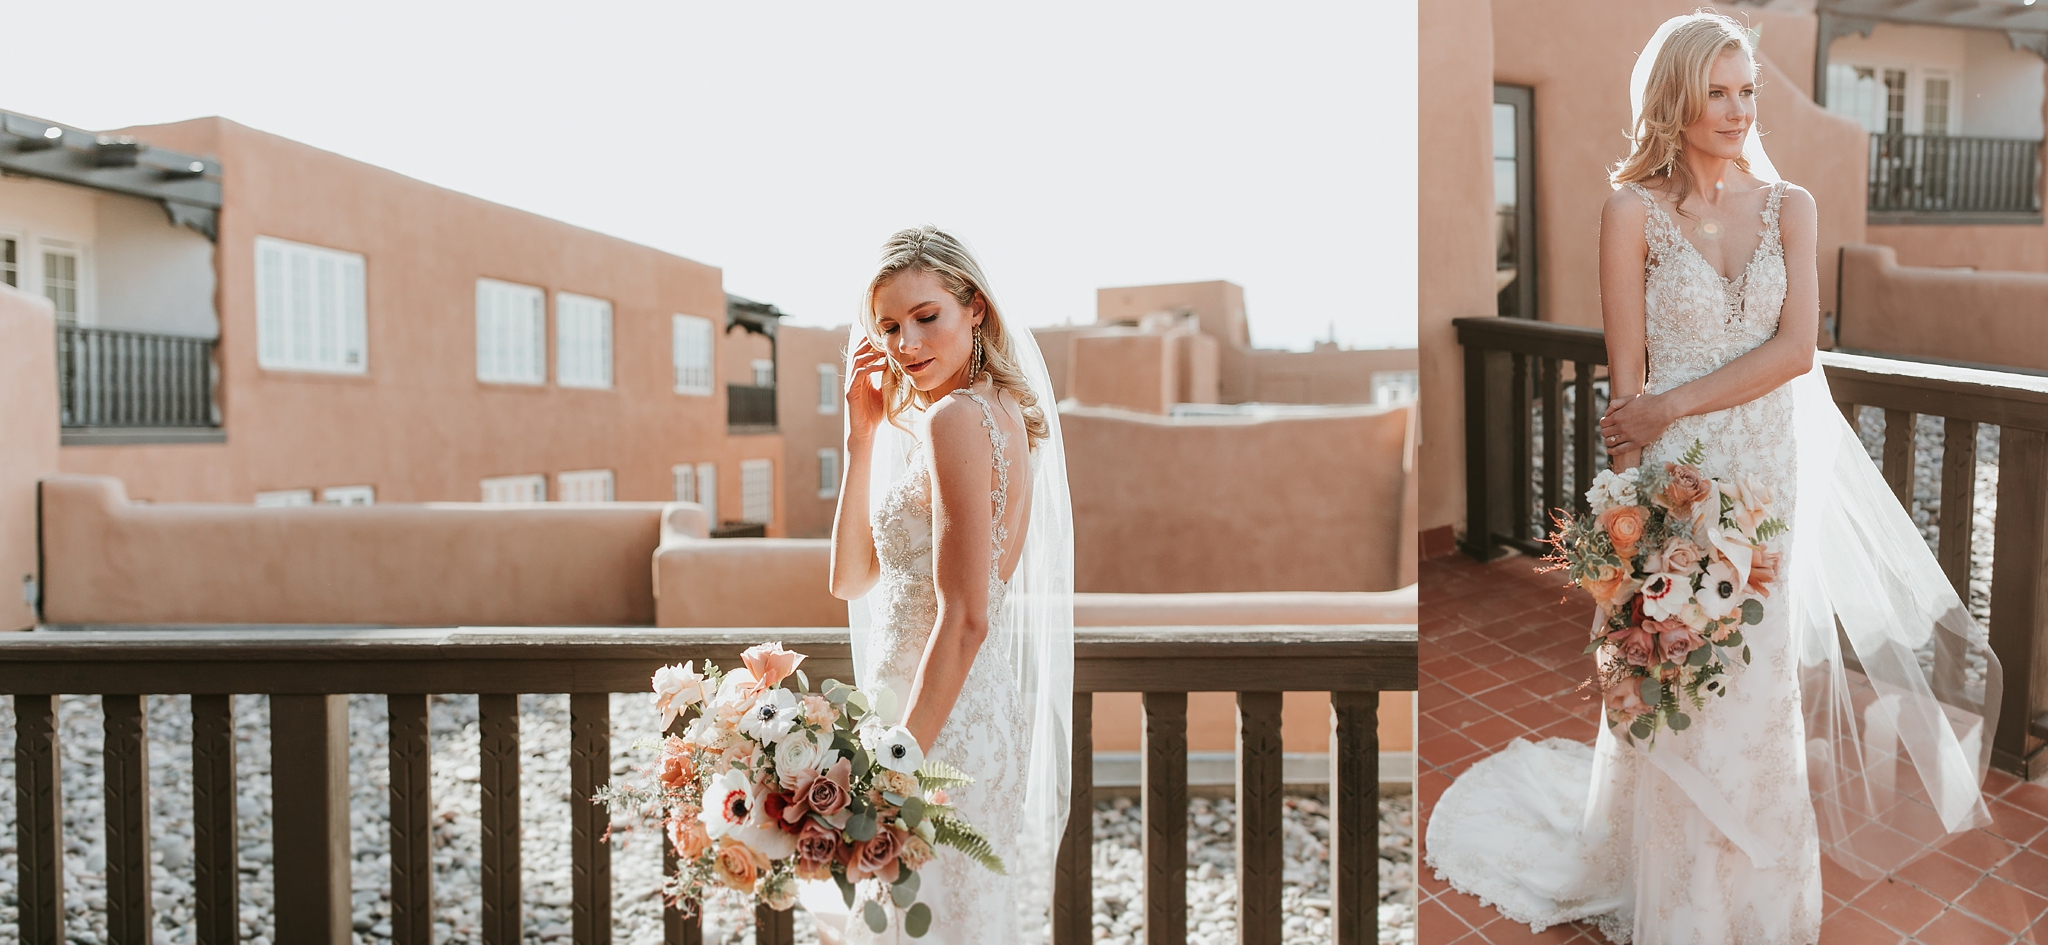 Alicia+lucia+photography+-+albuquerque+wedding+photographer+-+santa+fe+wedding+photography+-+new+mexico+wedding+photographer+-+new+mexico+wedding+-+santa+fe+wedding+-+albuquerque+wedding+-+bridal+hair_0050.jpg